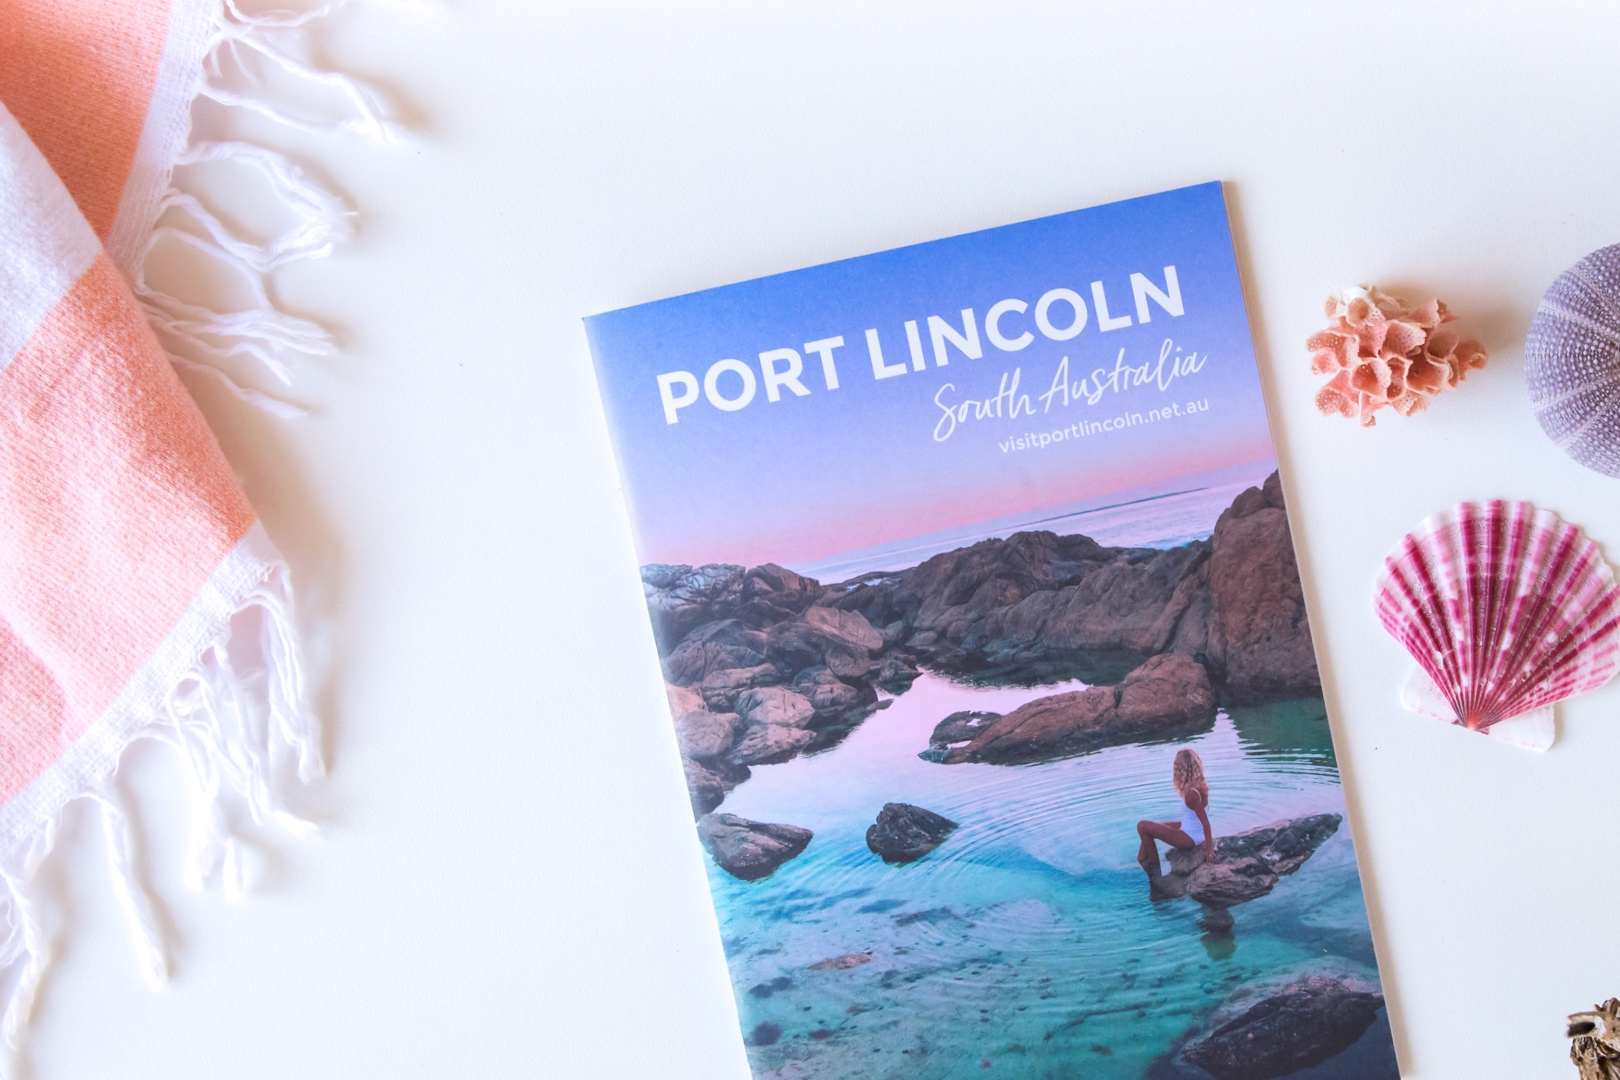 Port Lincoln Visitor's Guide